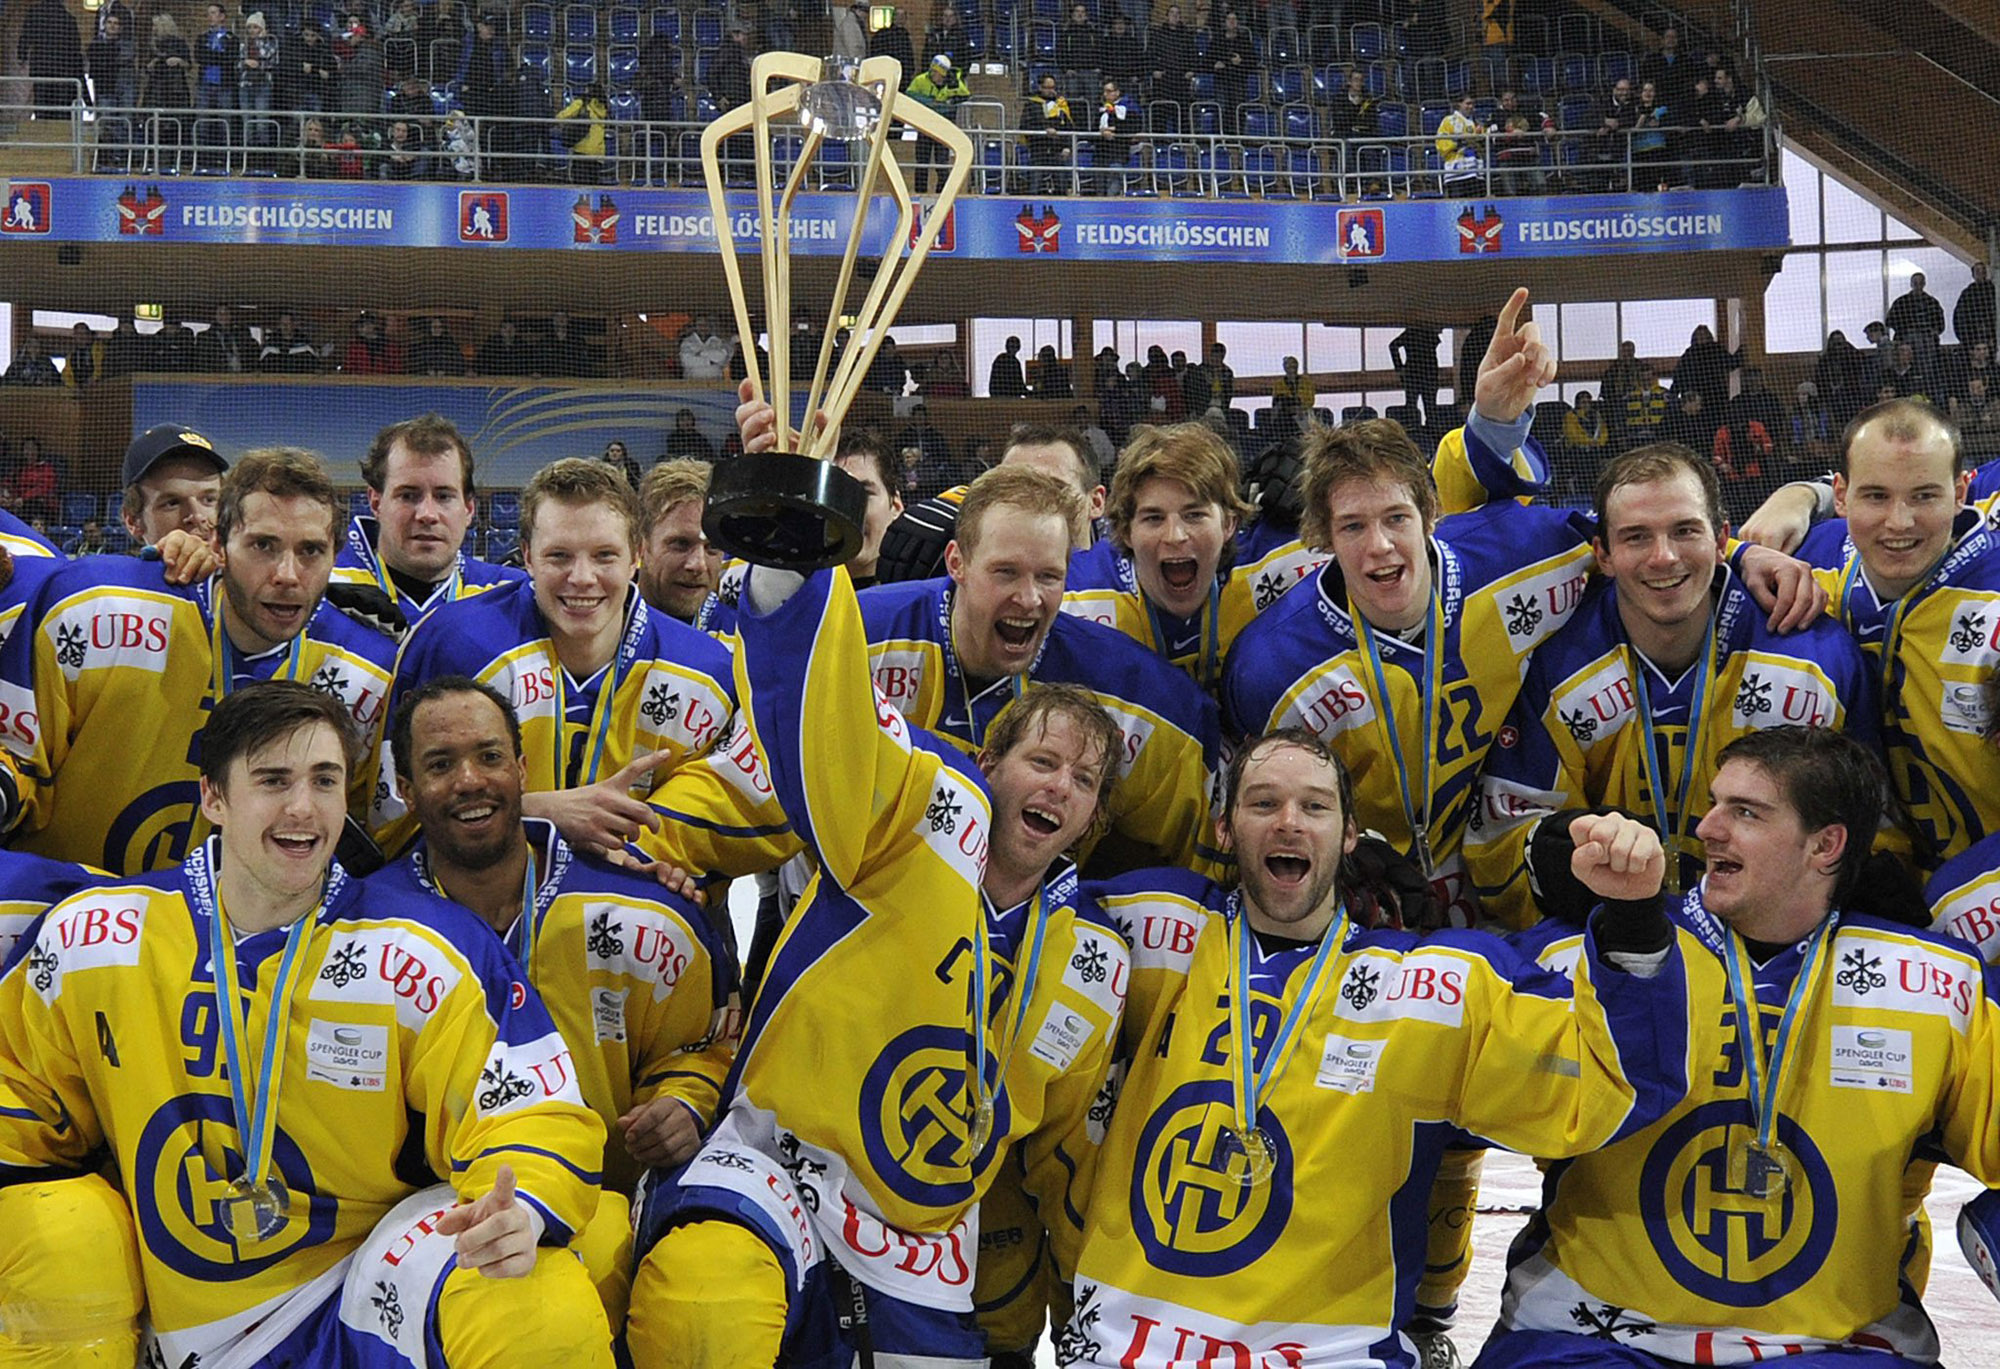 Davos players celebrate their victory after the final game between HC Davos and Dynamo Riga at the 85th Spengler Cup ice hockey tournament, in Davos, Switzerland, Saturday, December 31, 2011. (KEYSTONE/ Peter Schneider)